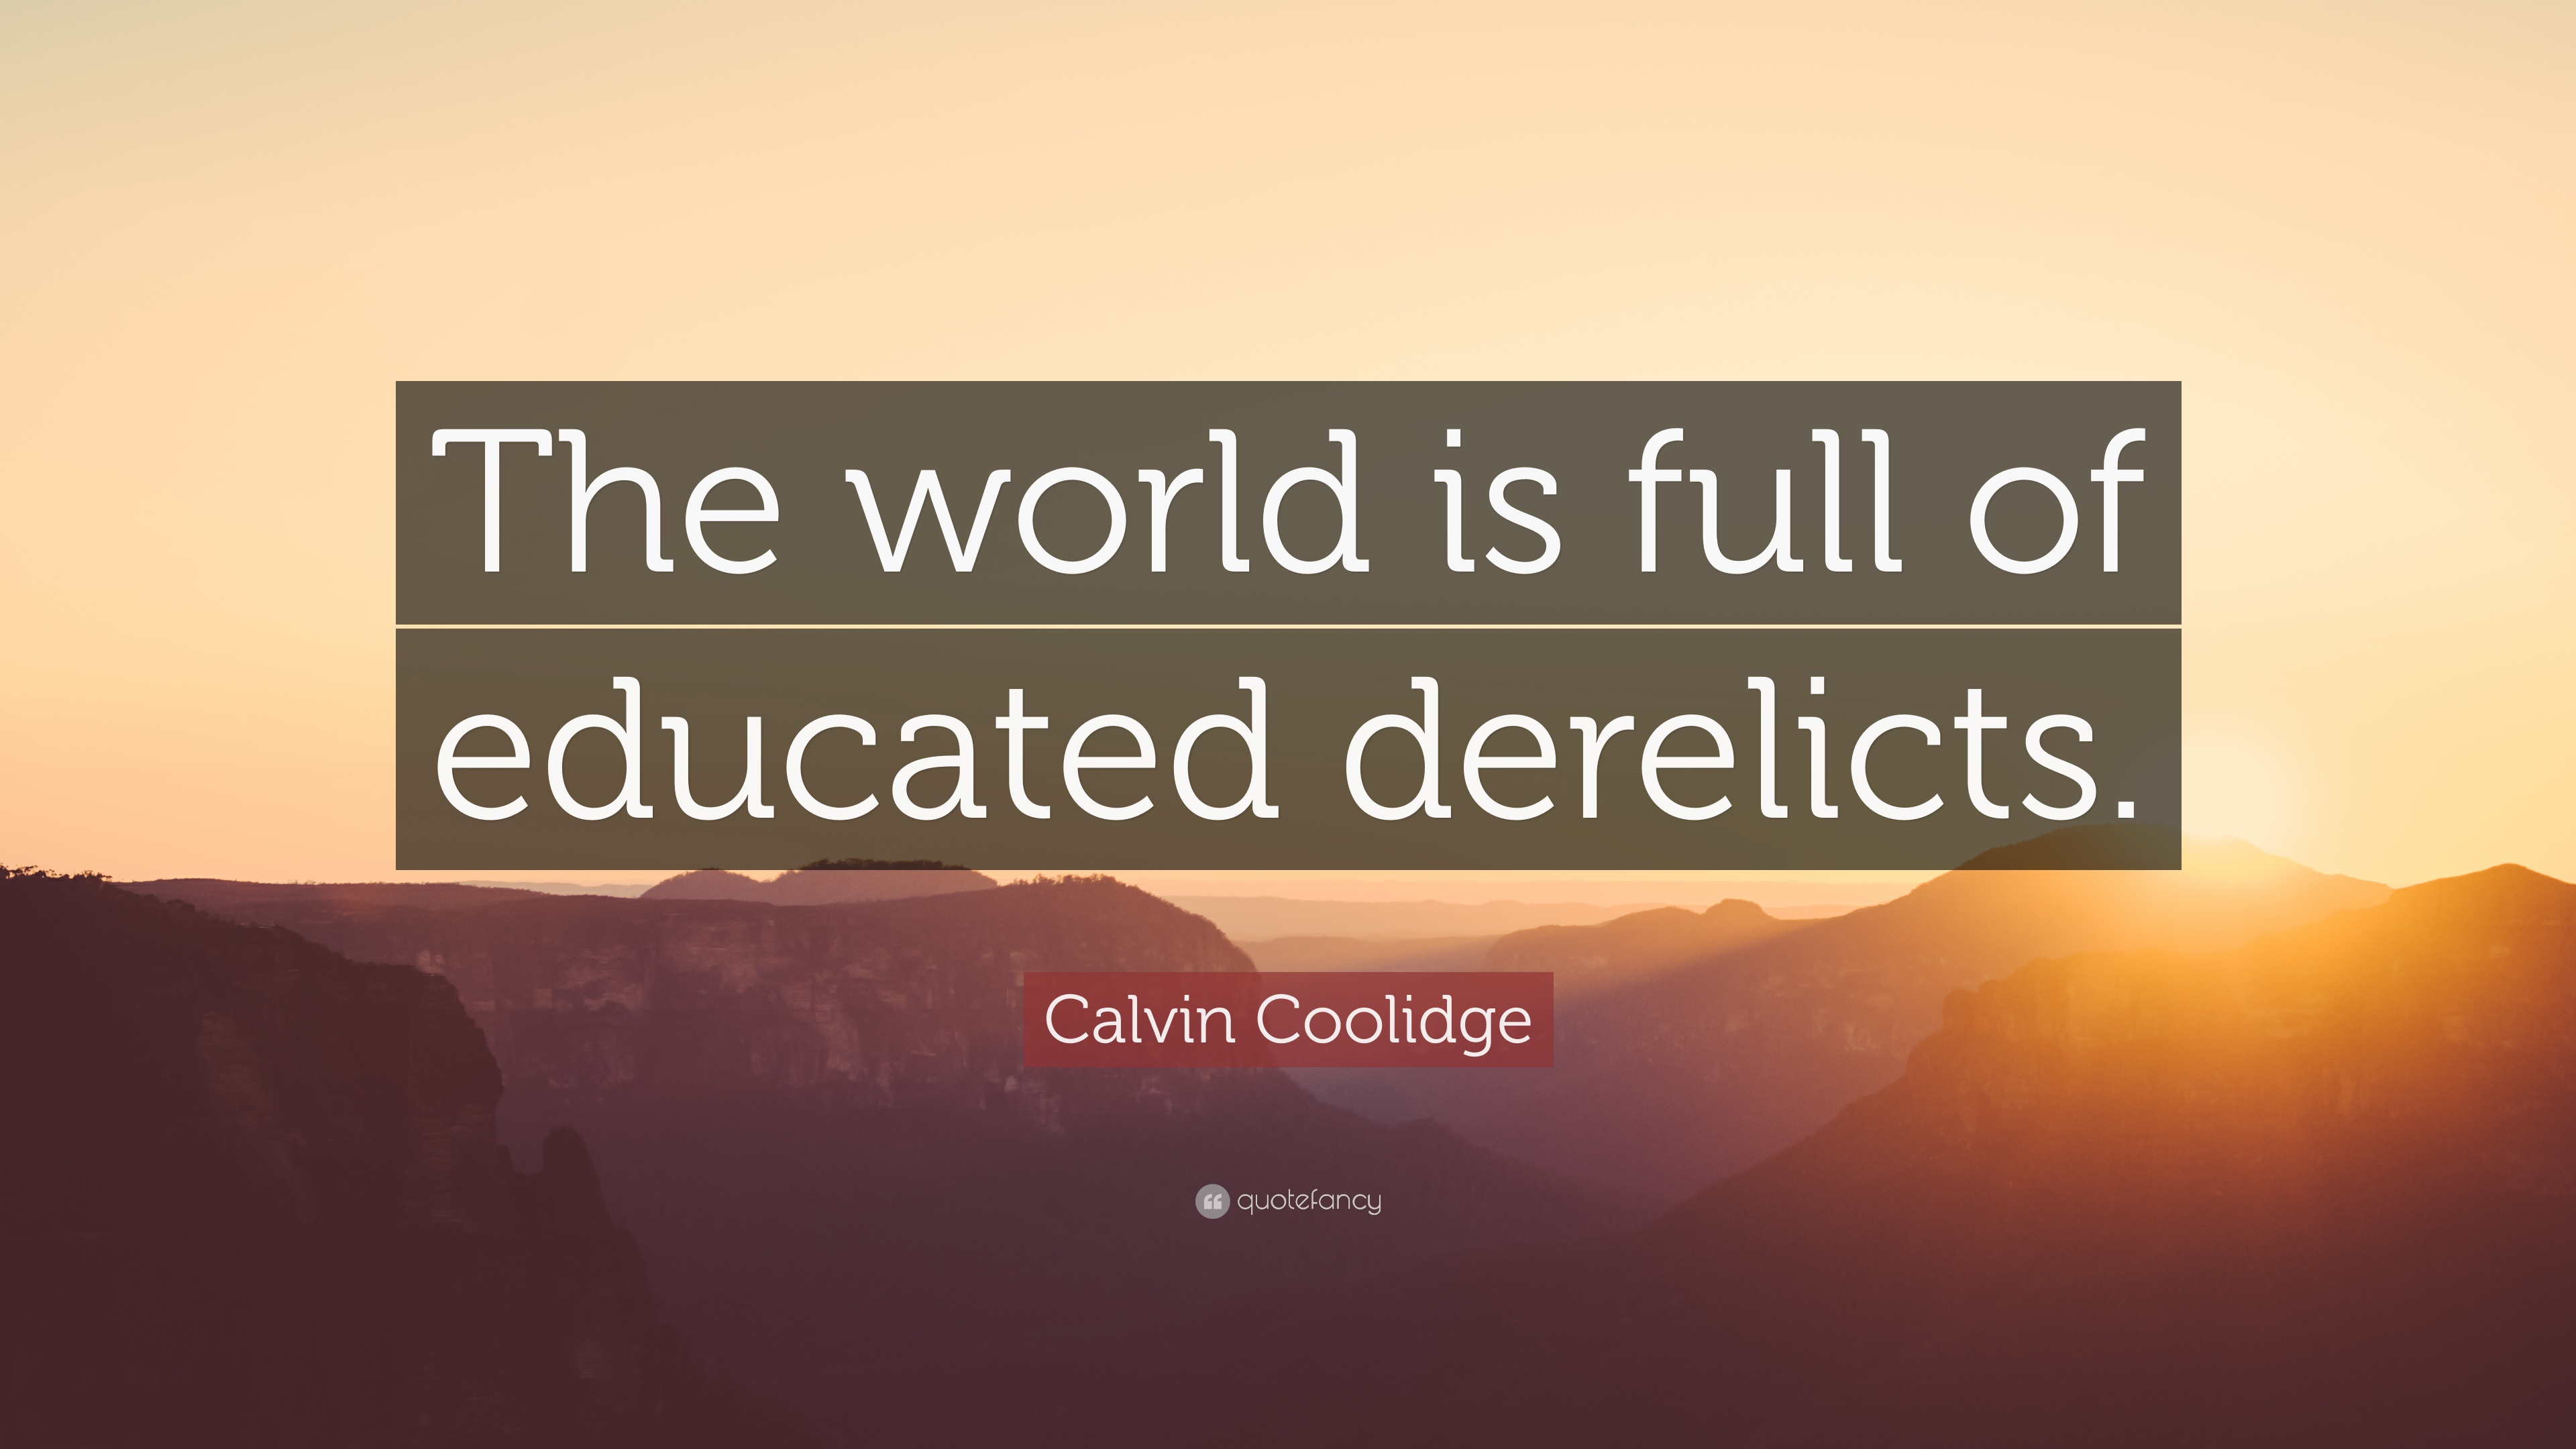 Kennedy Quote Wallpaper Calvin Coolidge Quote The World Is Full Of Educated